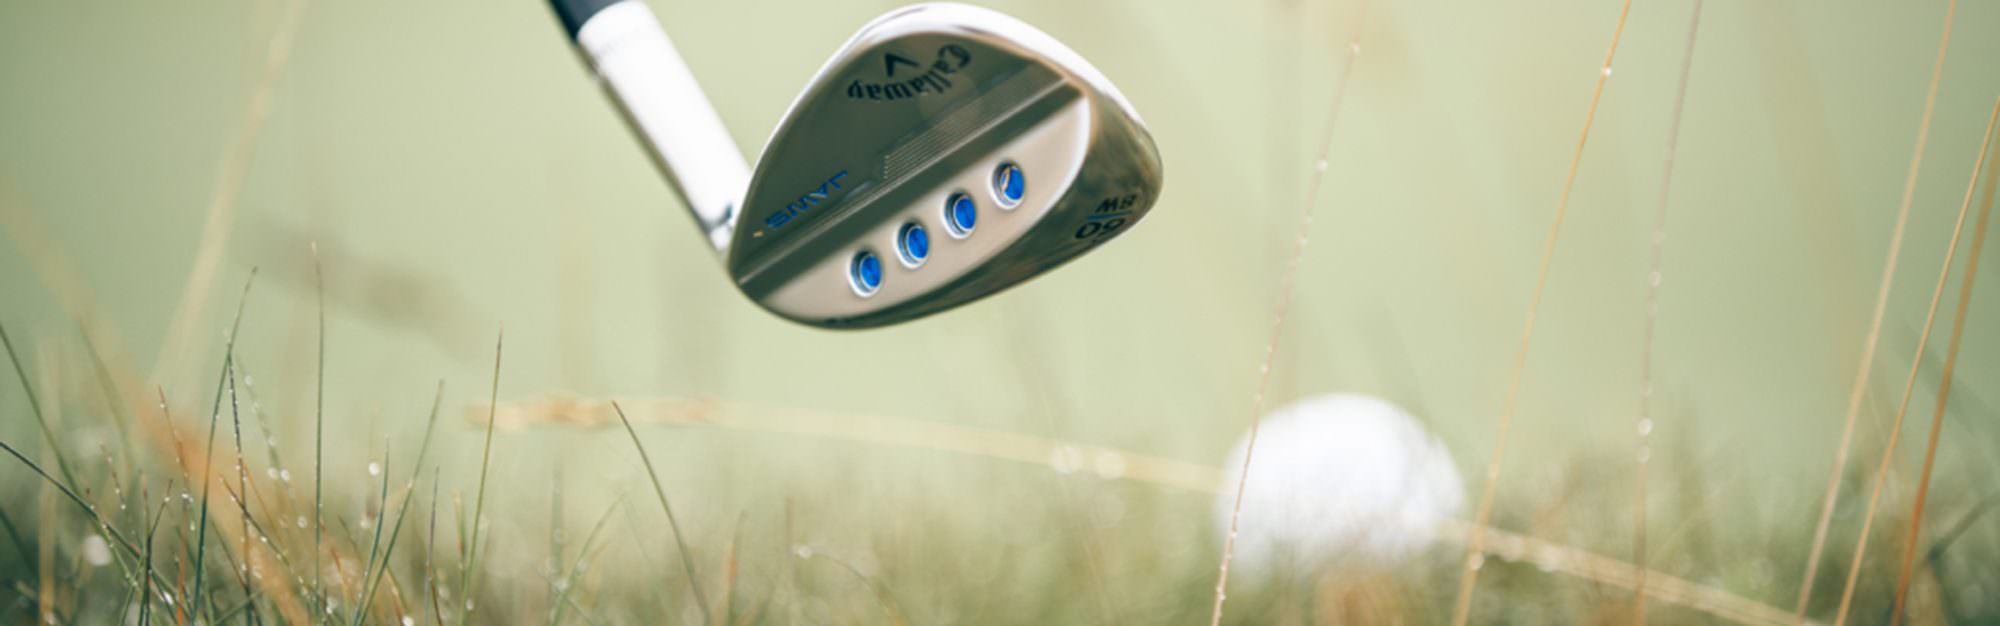 Never go in the water again with Callaway's new Jaws wedges